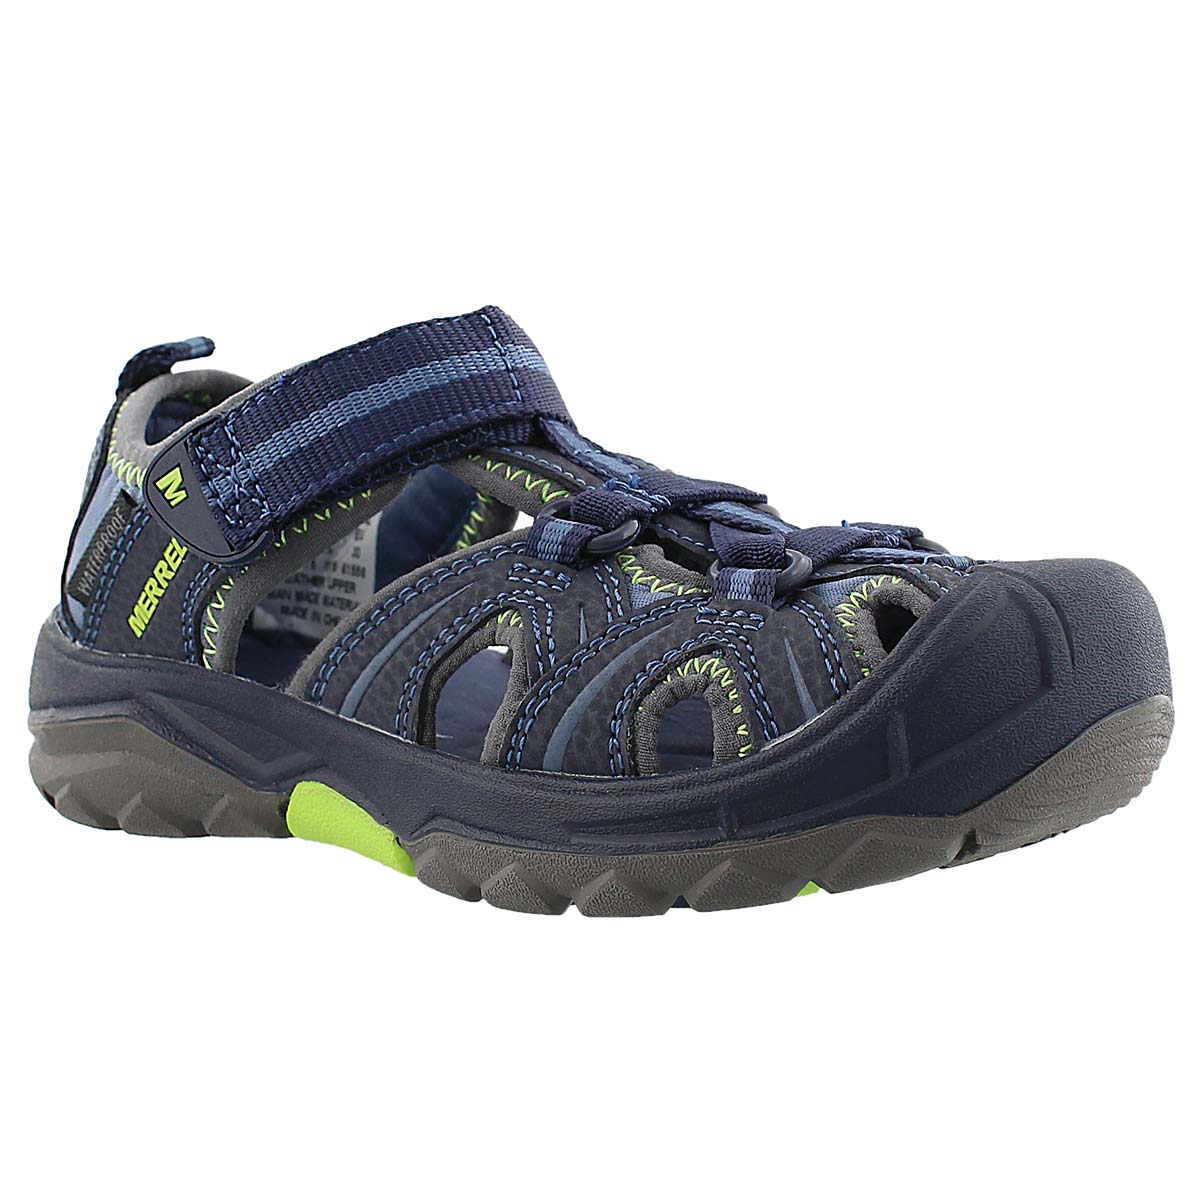 Boys' HYDRO navy/green fisherman sandals